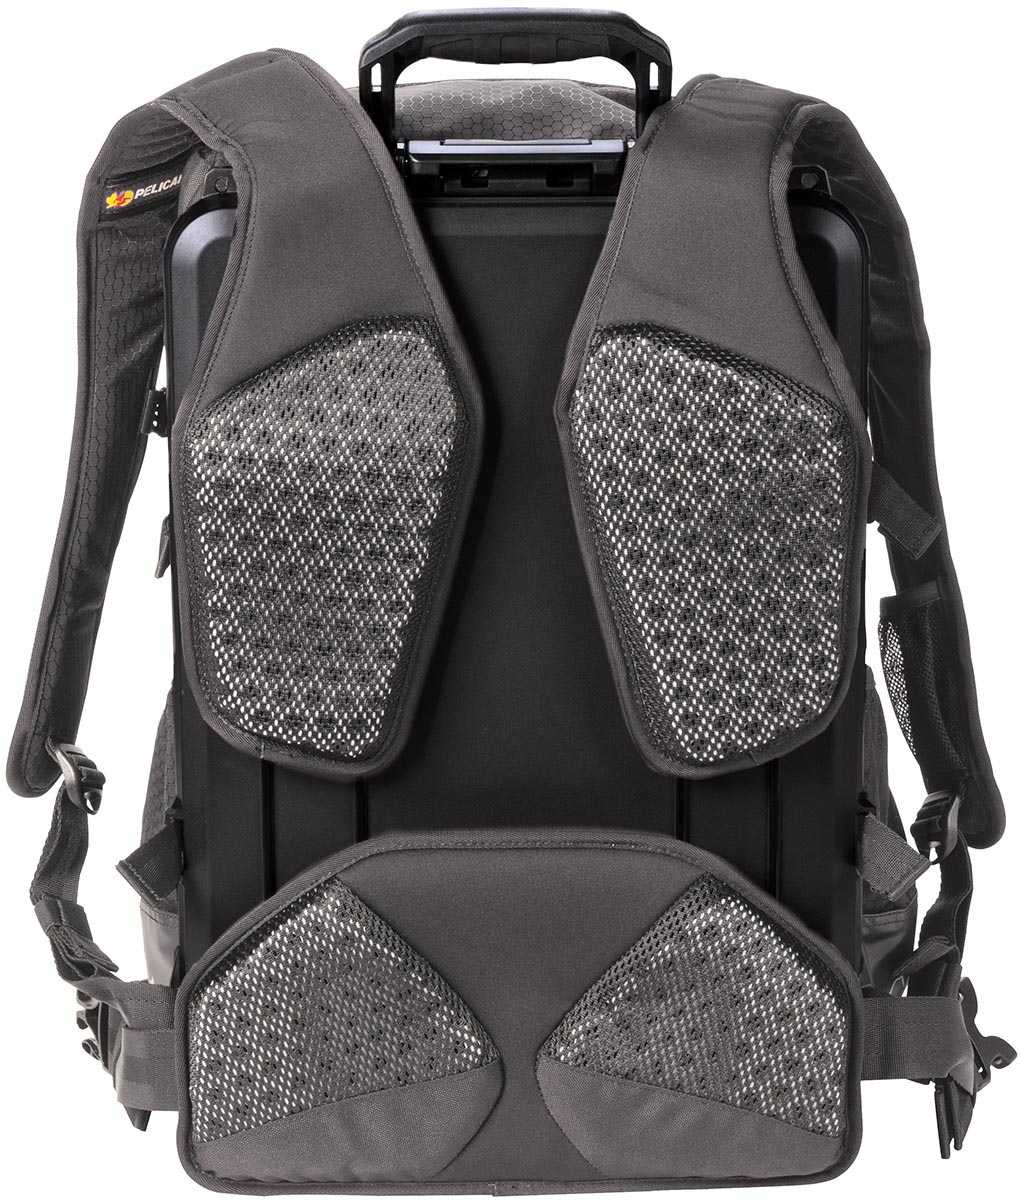 pelican comfortable best hiking back pack